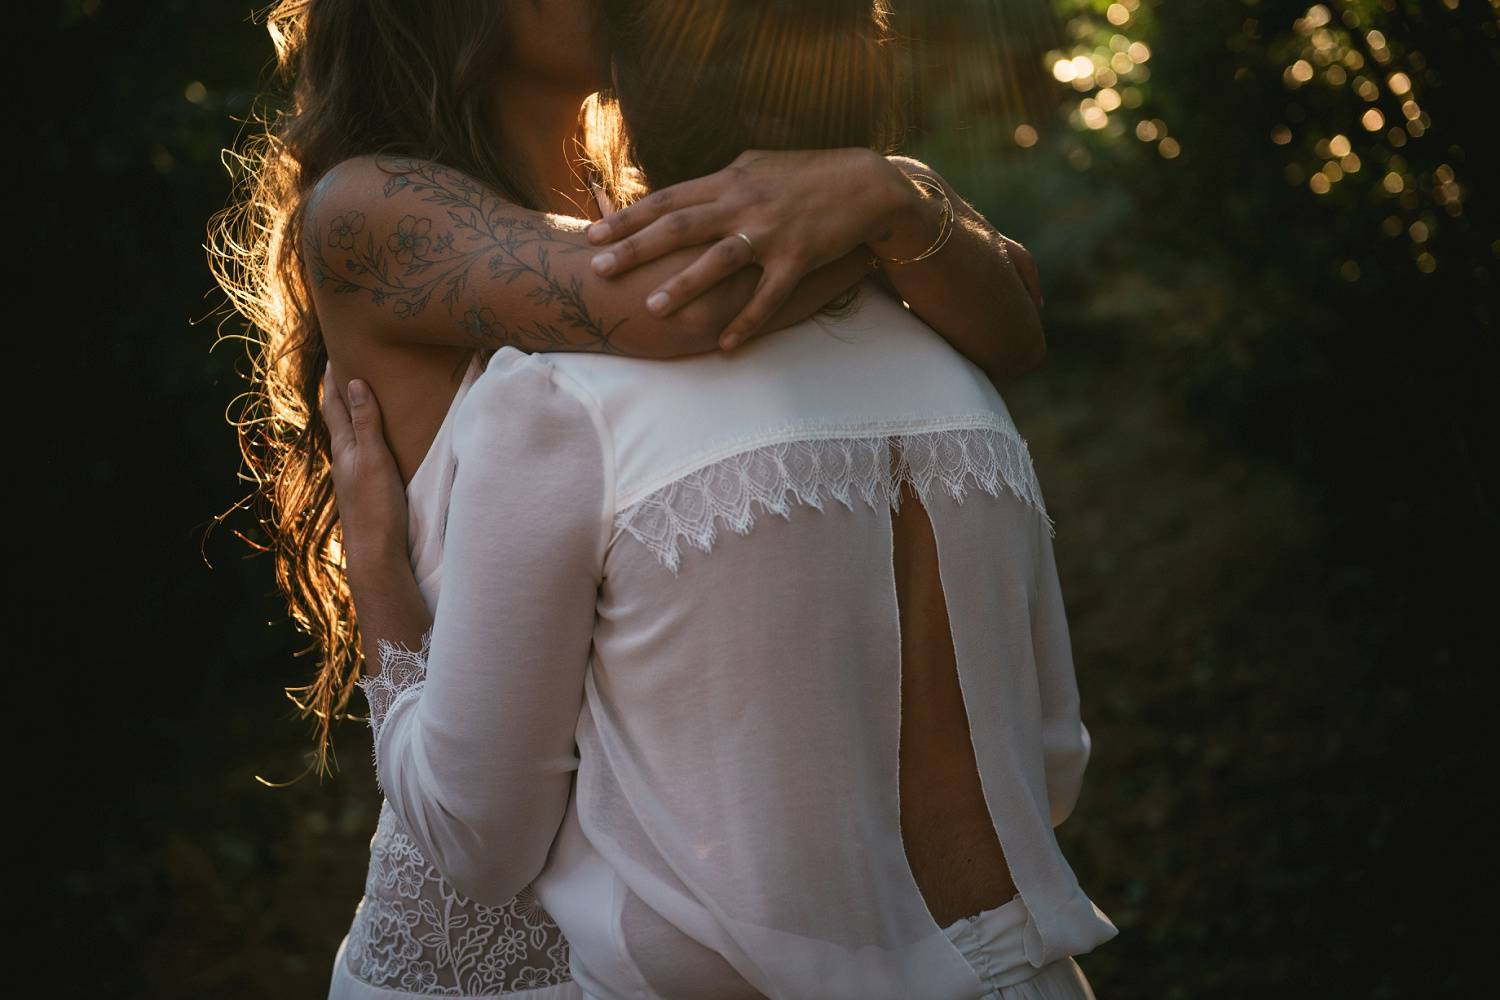 Two women hug each other close during their first look before they become wives